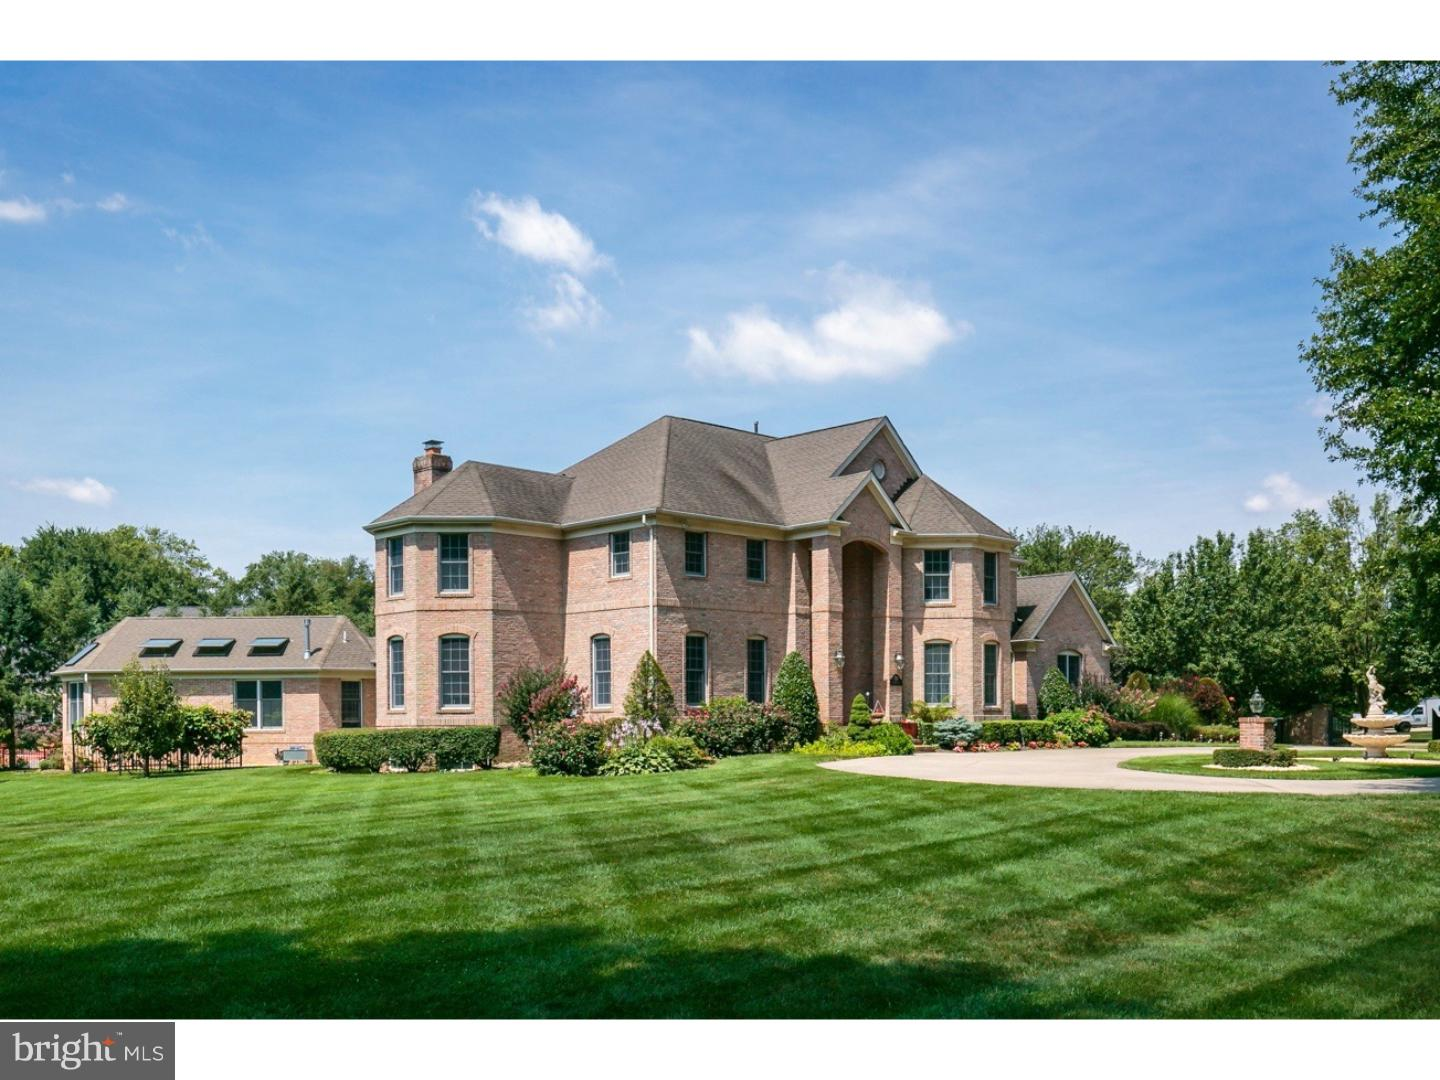 720 RIVERTON ROAD, MOORESTOWN, NJ 08057